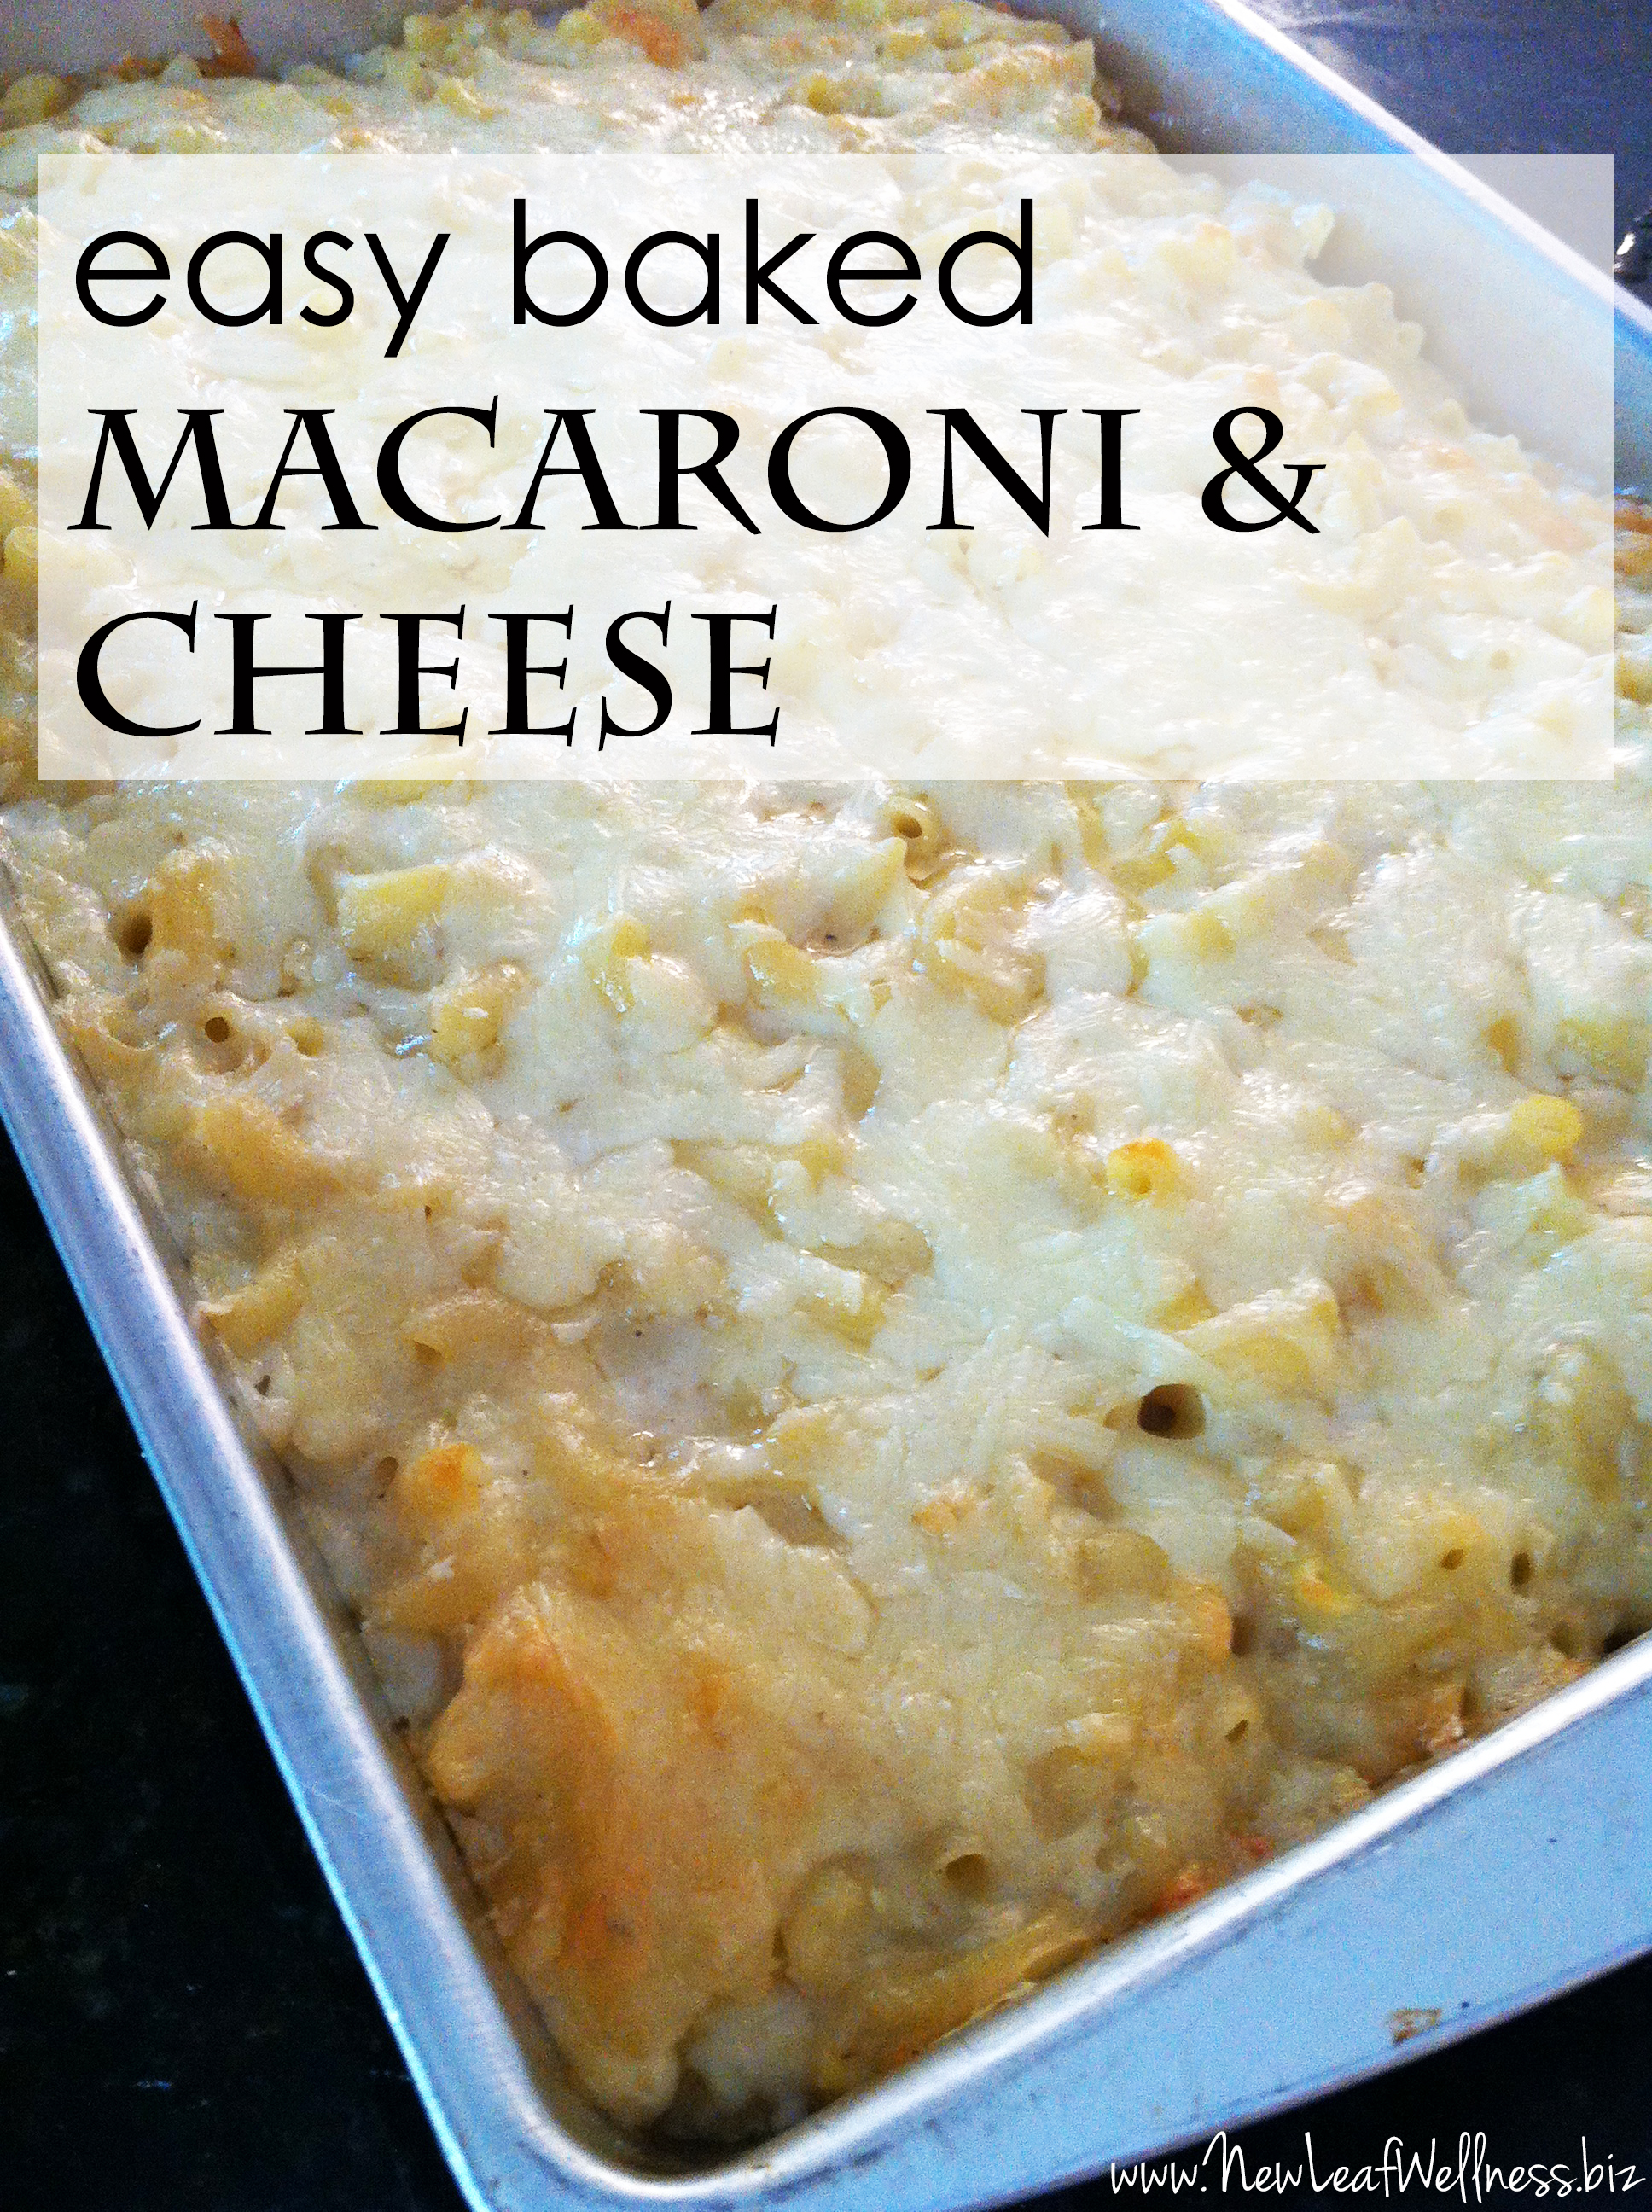 Since this easy baked macaroni and cheese recipe is such a crowd ...